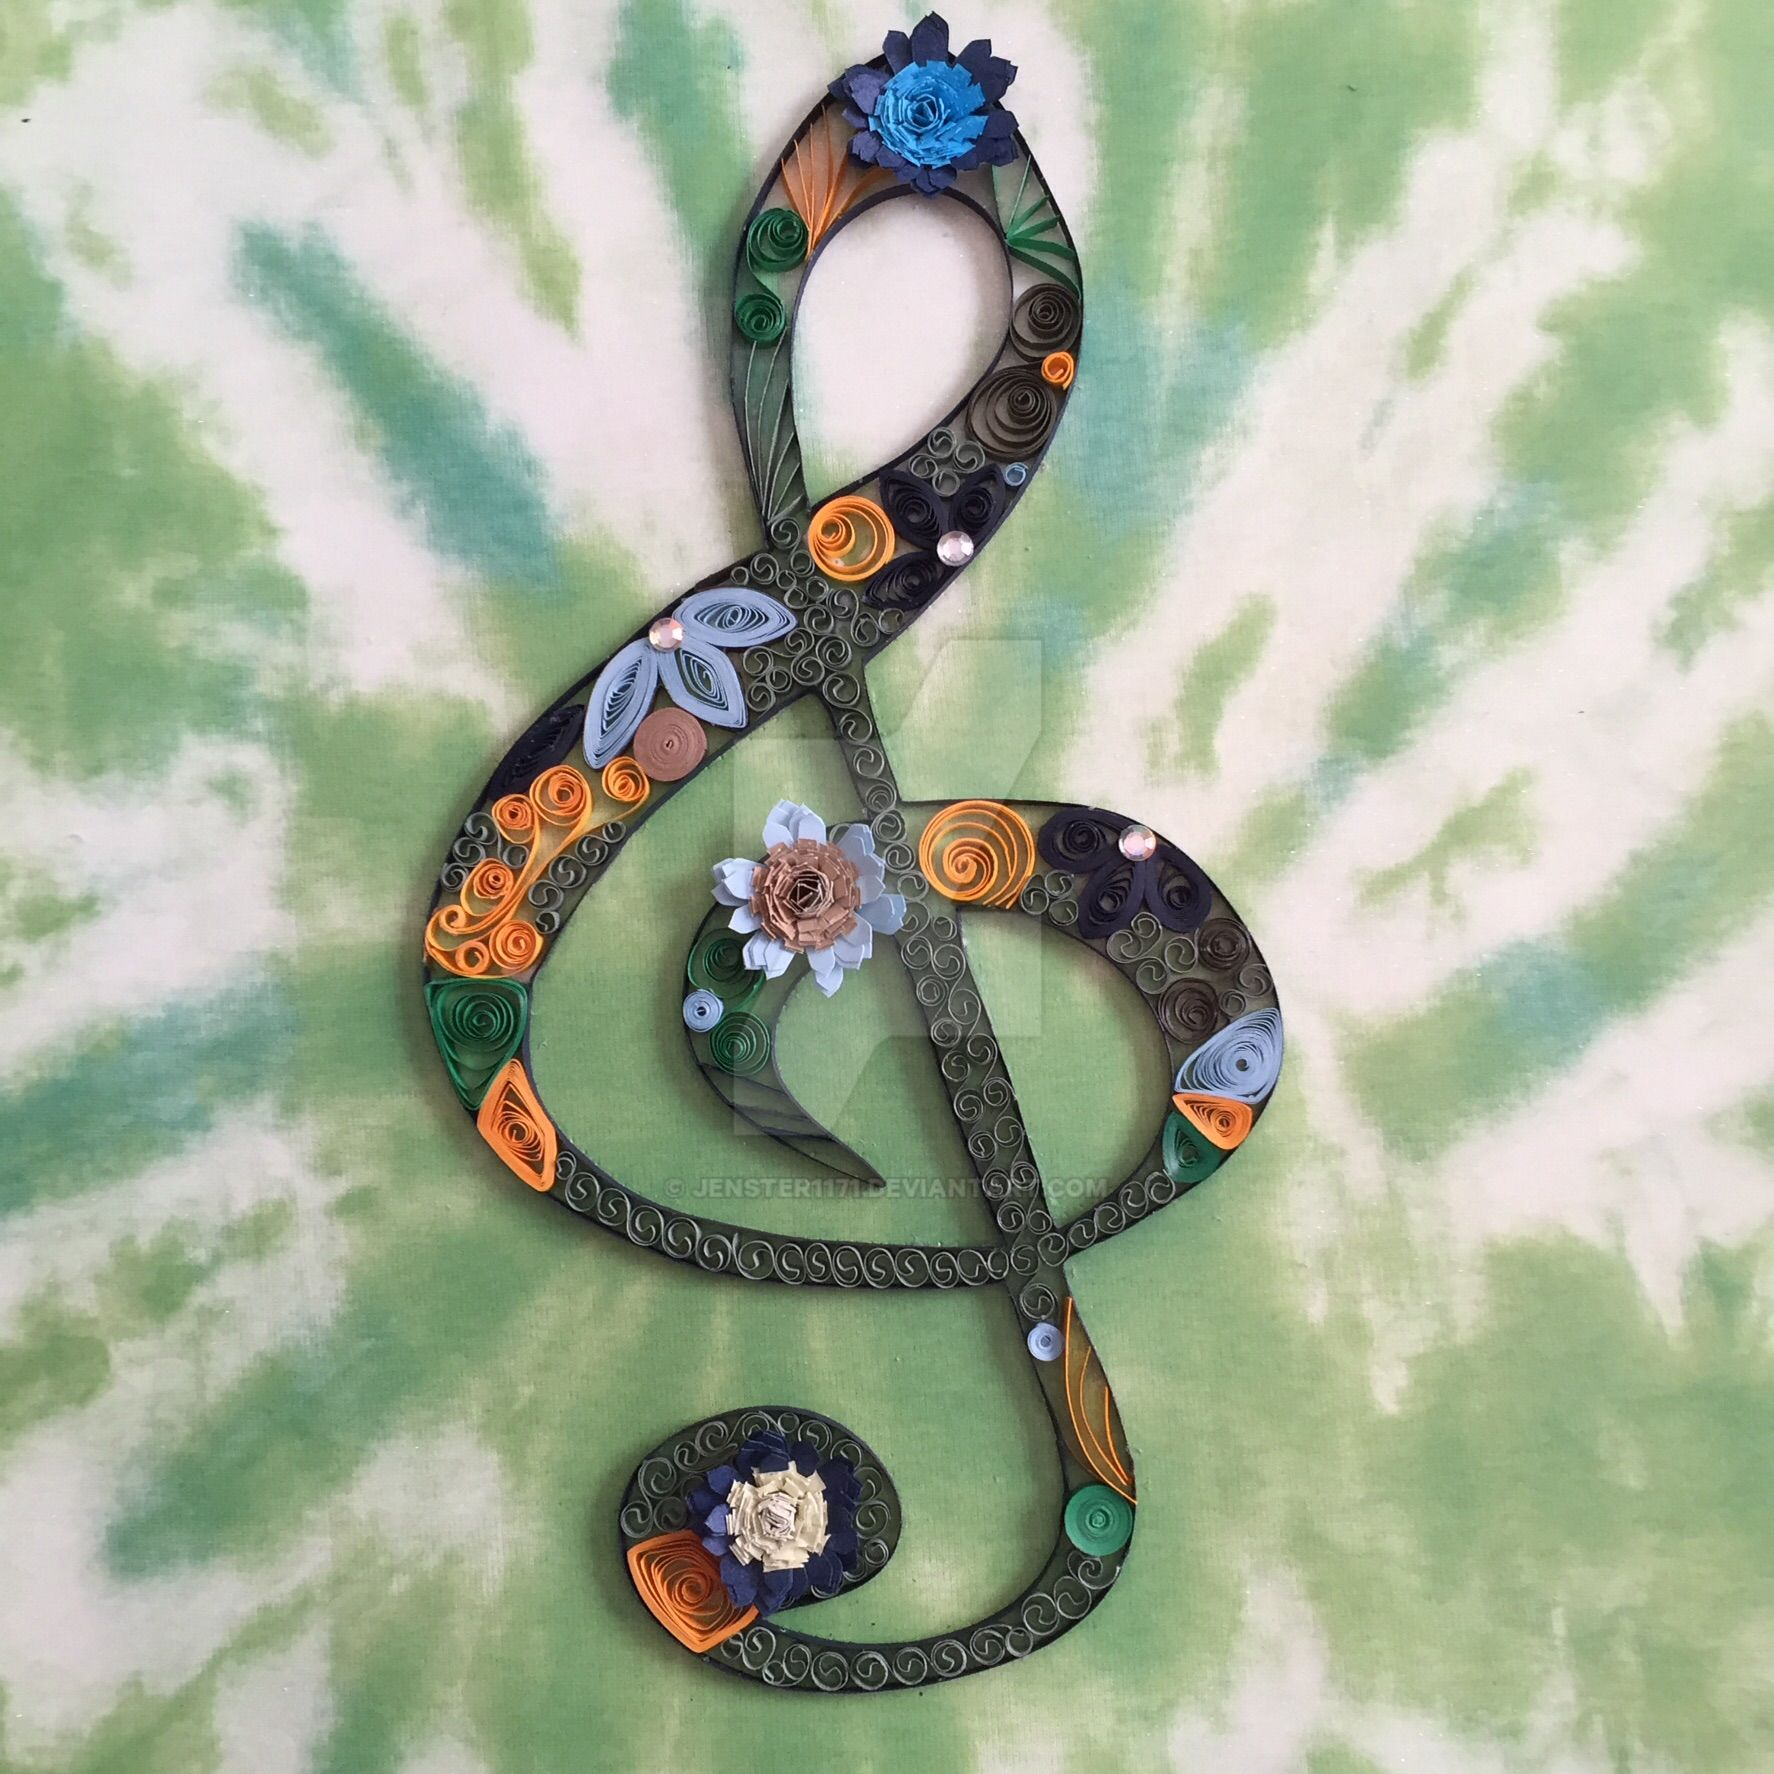 Quilled Treble Clef II by Jenster1171